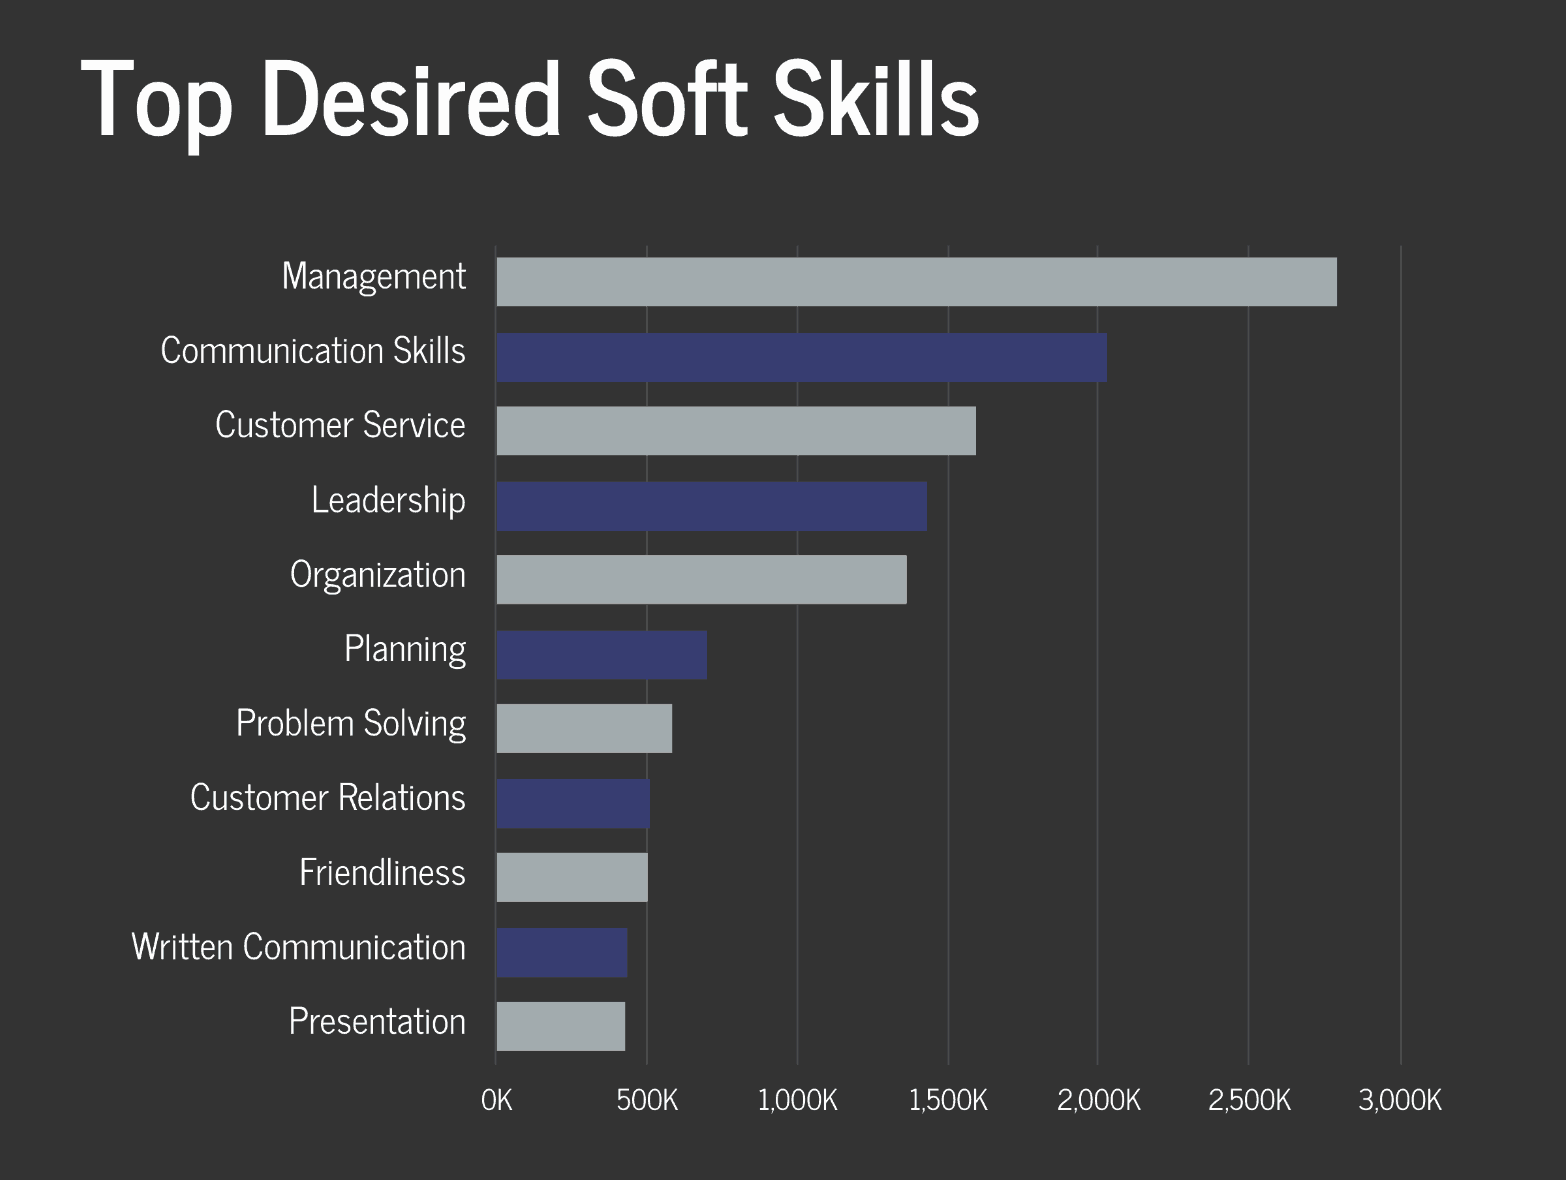 Top Soft Skills In Demand